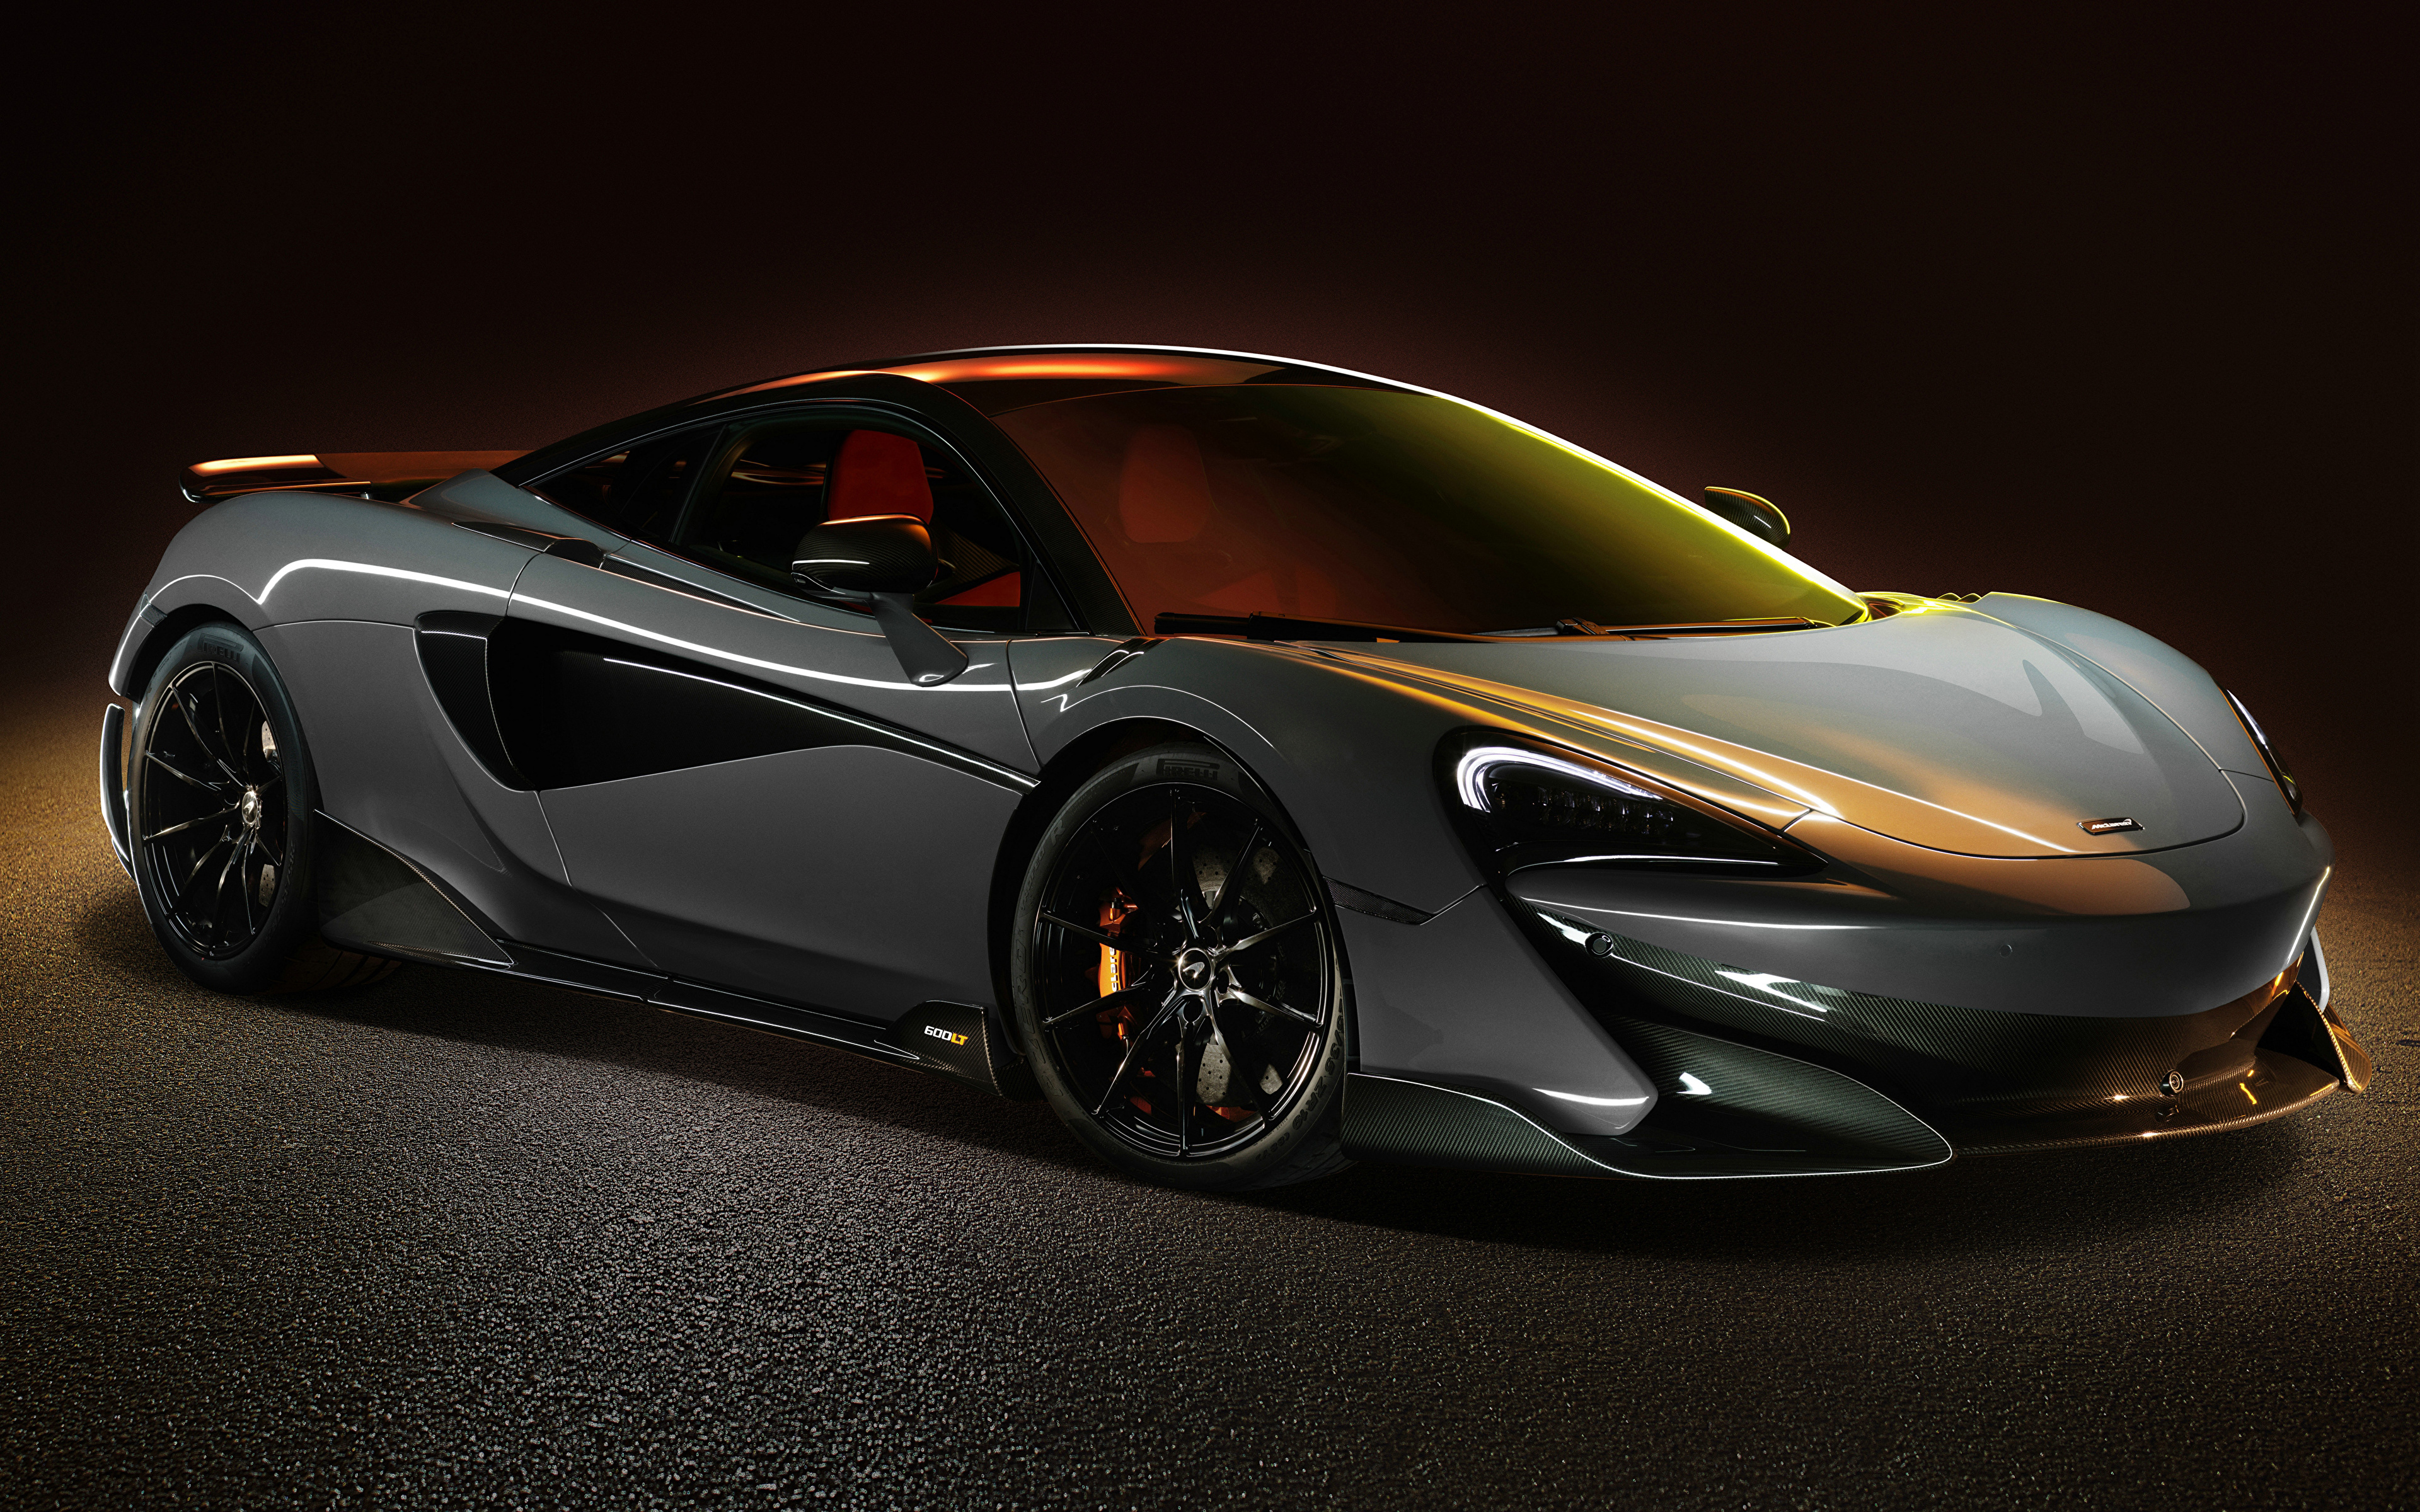 Know whats coming soon with news and pictures of future cars and concepts